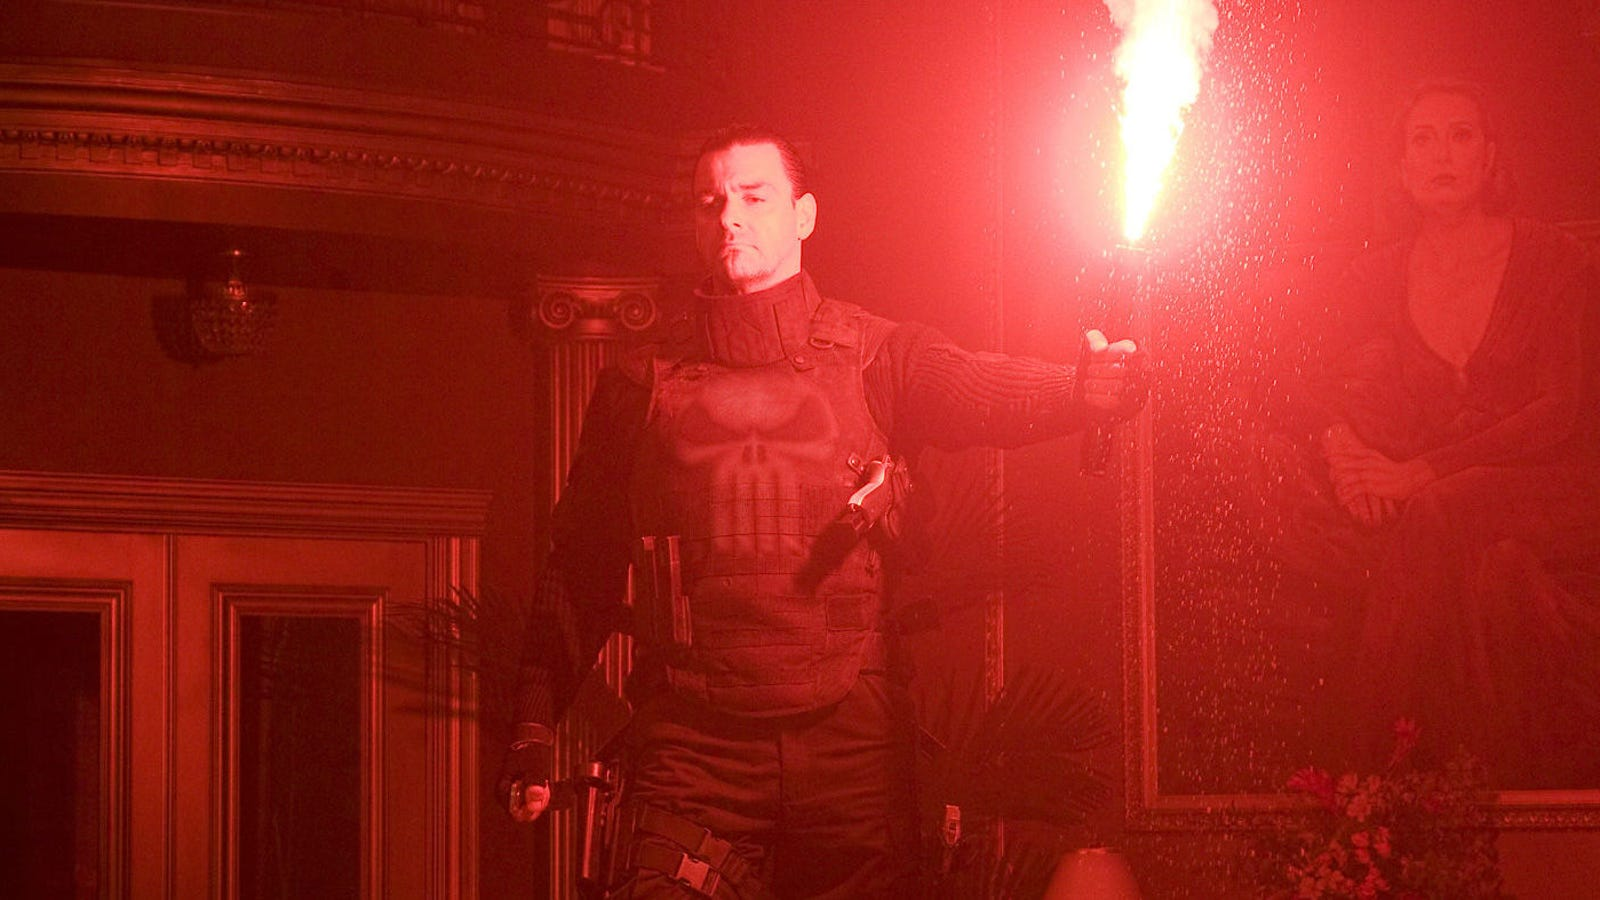 Punisher: War Zone Director Lexi Alexander on the Curious Journey to Cult Status